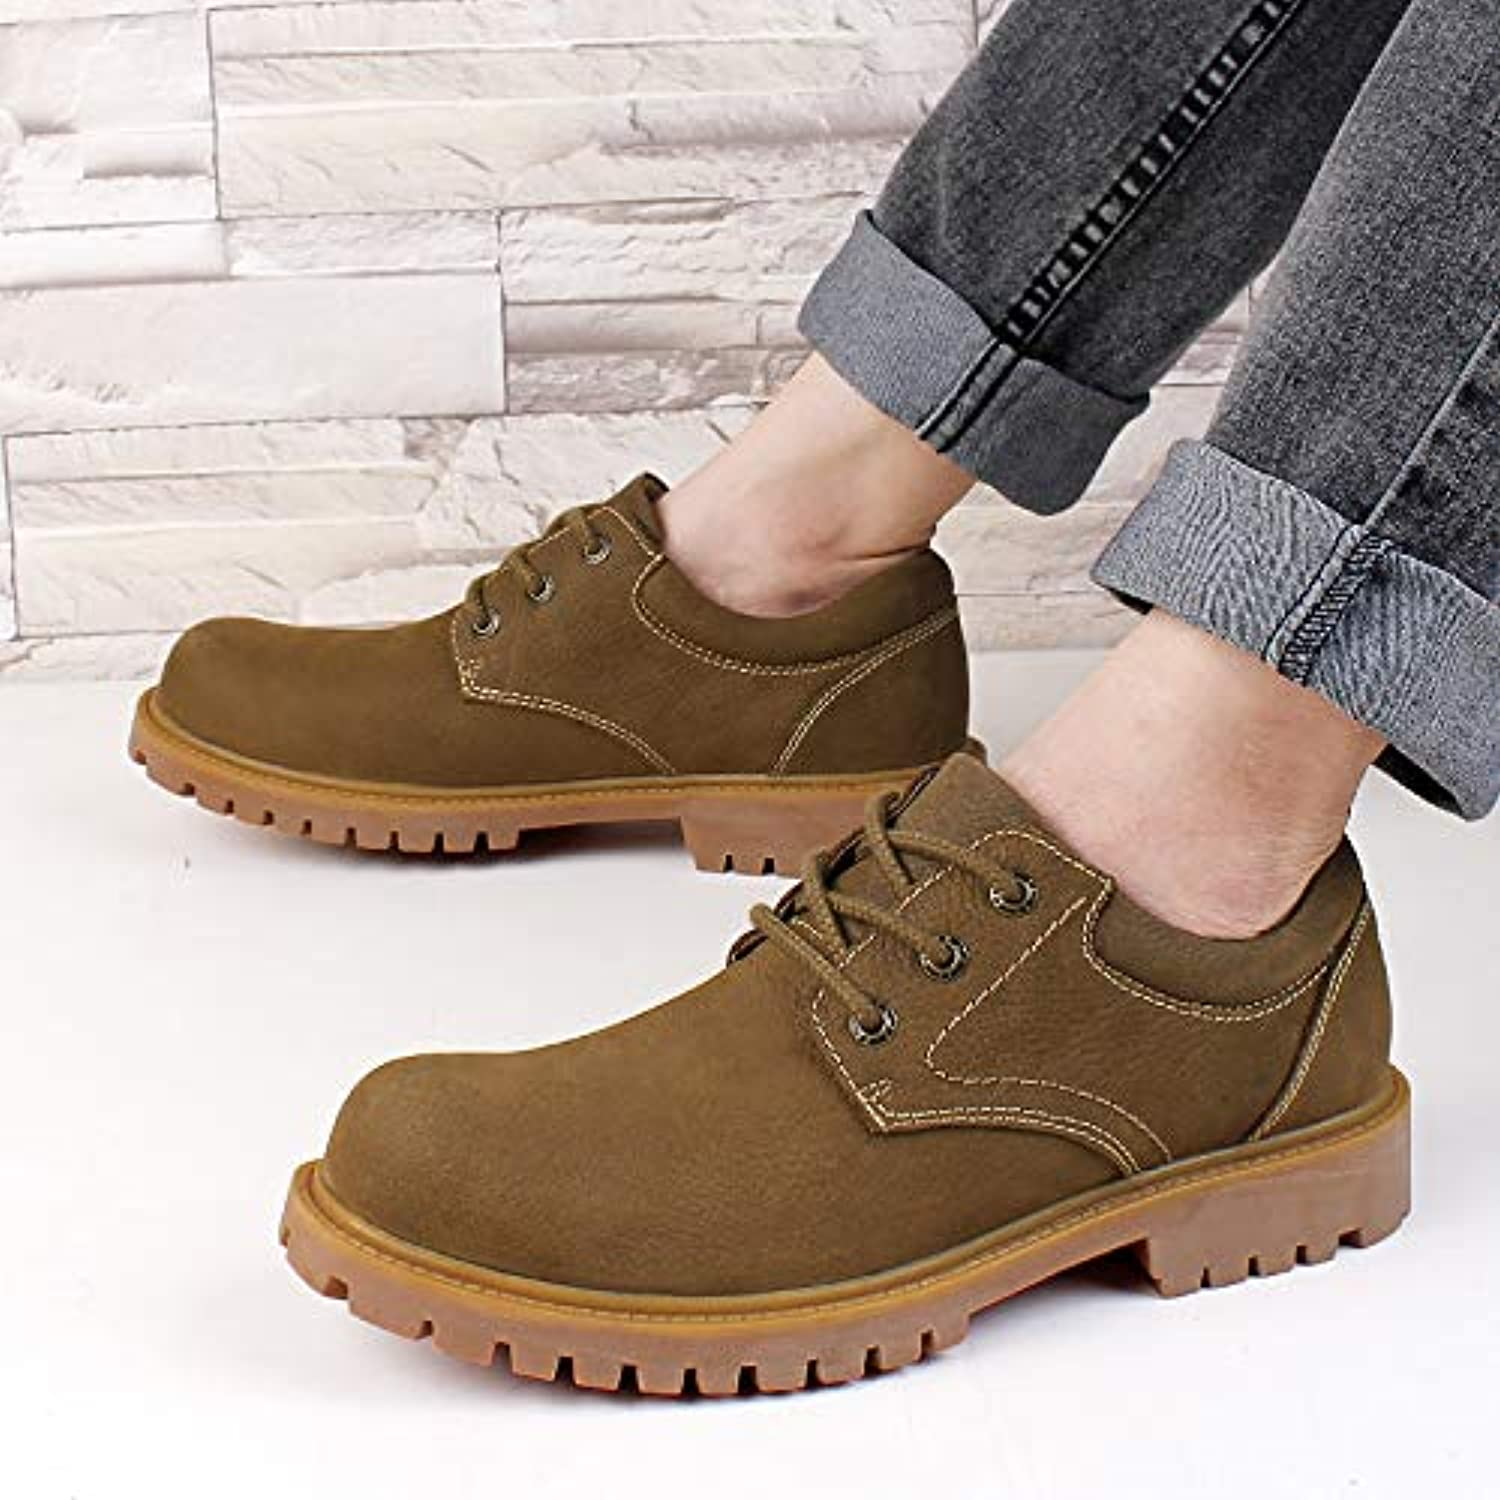 ZyuQ Ankle boots Tooling shoes Men'S shoes Plus Large Low To Help Pu Martin Boots Large Size Rhubarb shoes